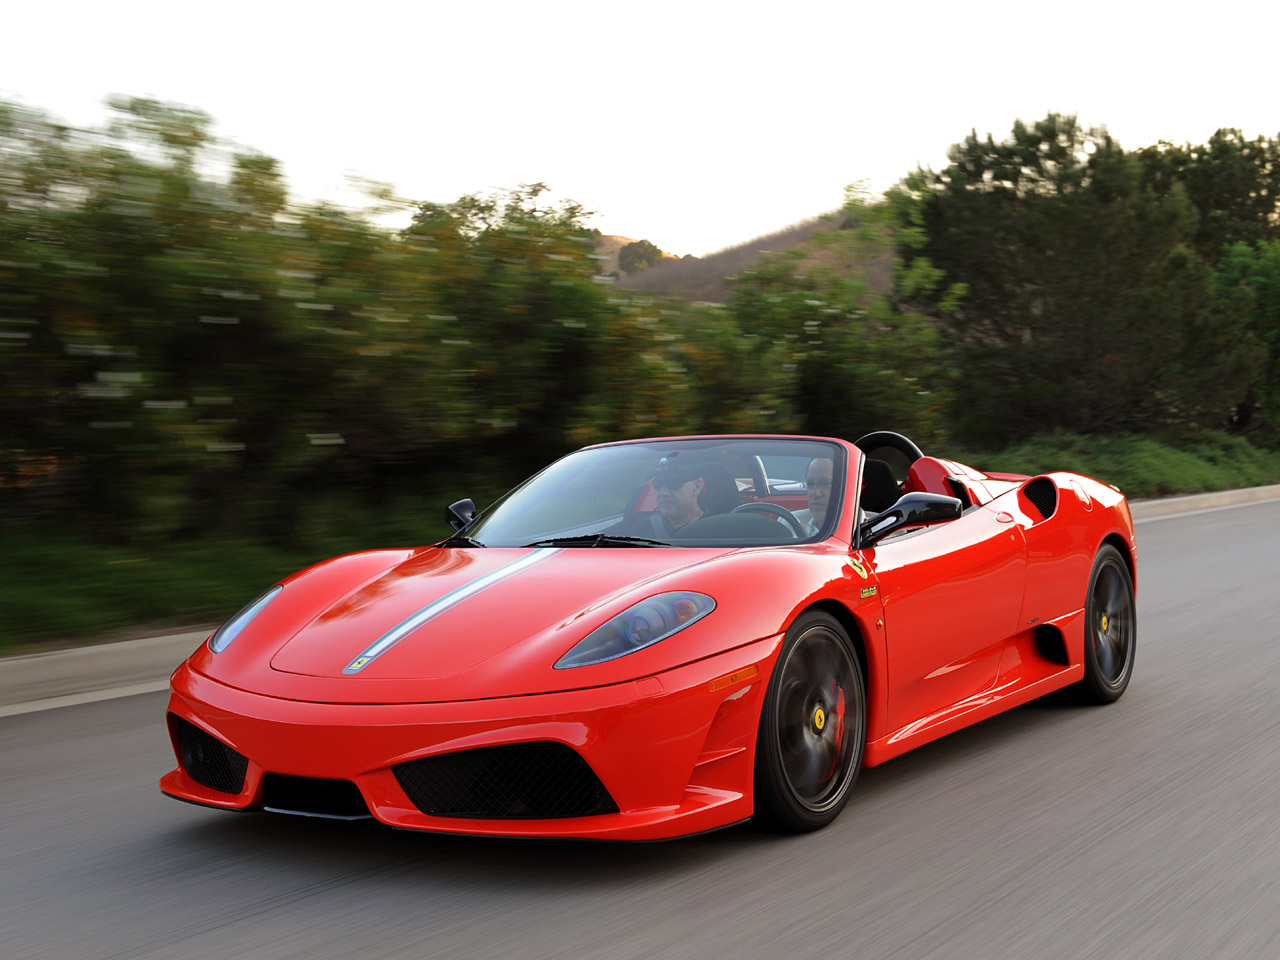 Ferrari Scuderia Spider 16m Front View World Cars Free Download Image Of